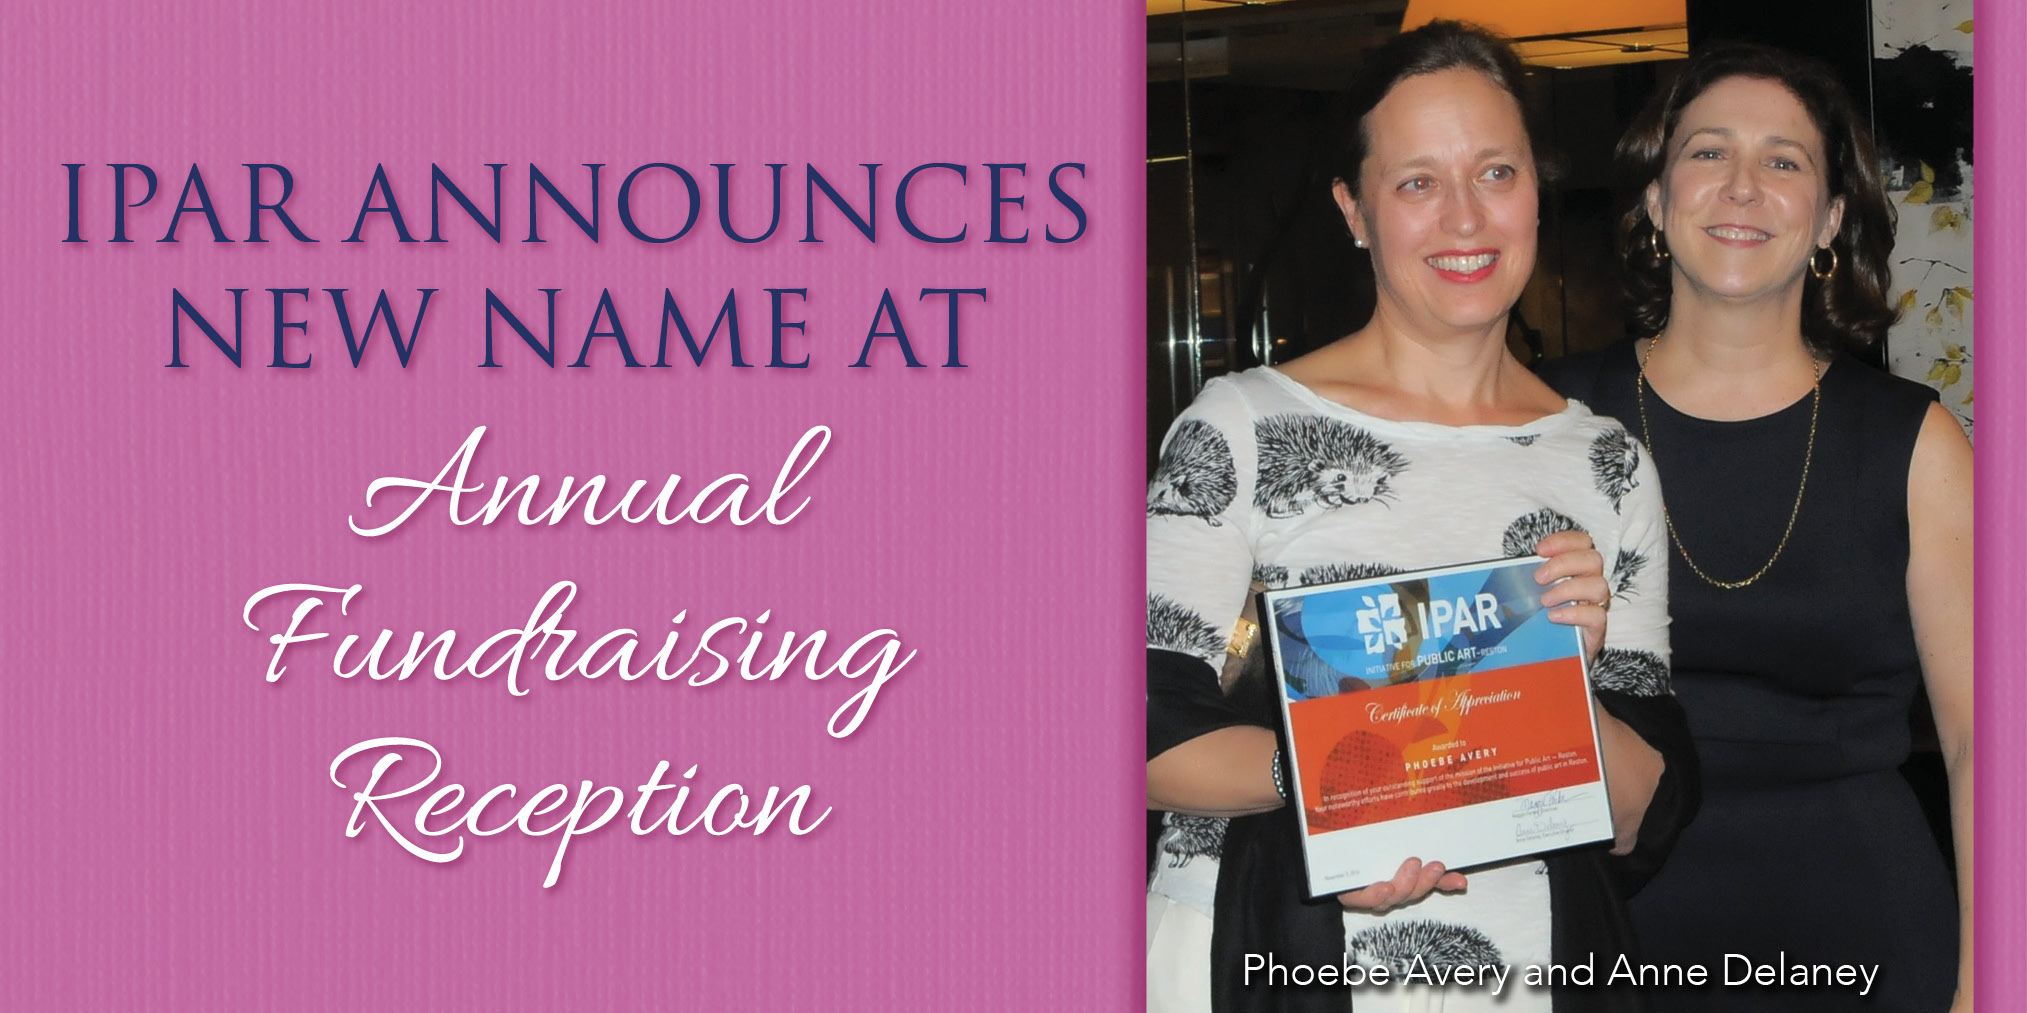 IPAR announces new name at Annual Fundraising Reception with photo of Phoebe Avery and Anne Delaney